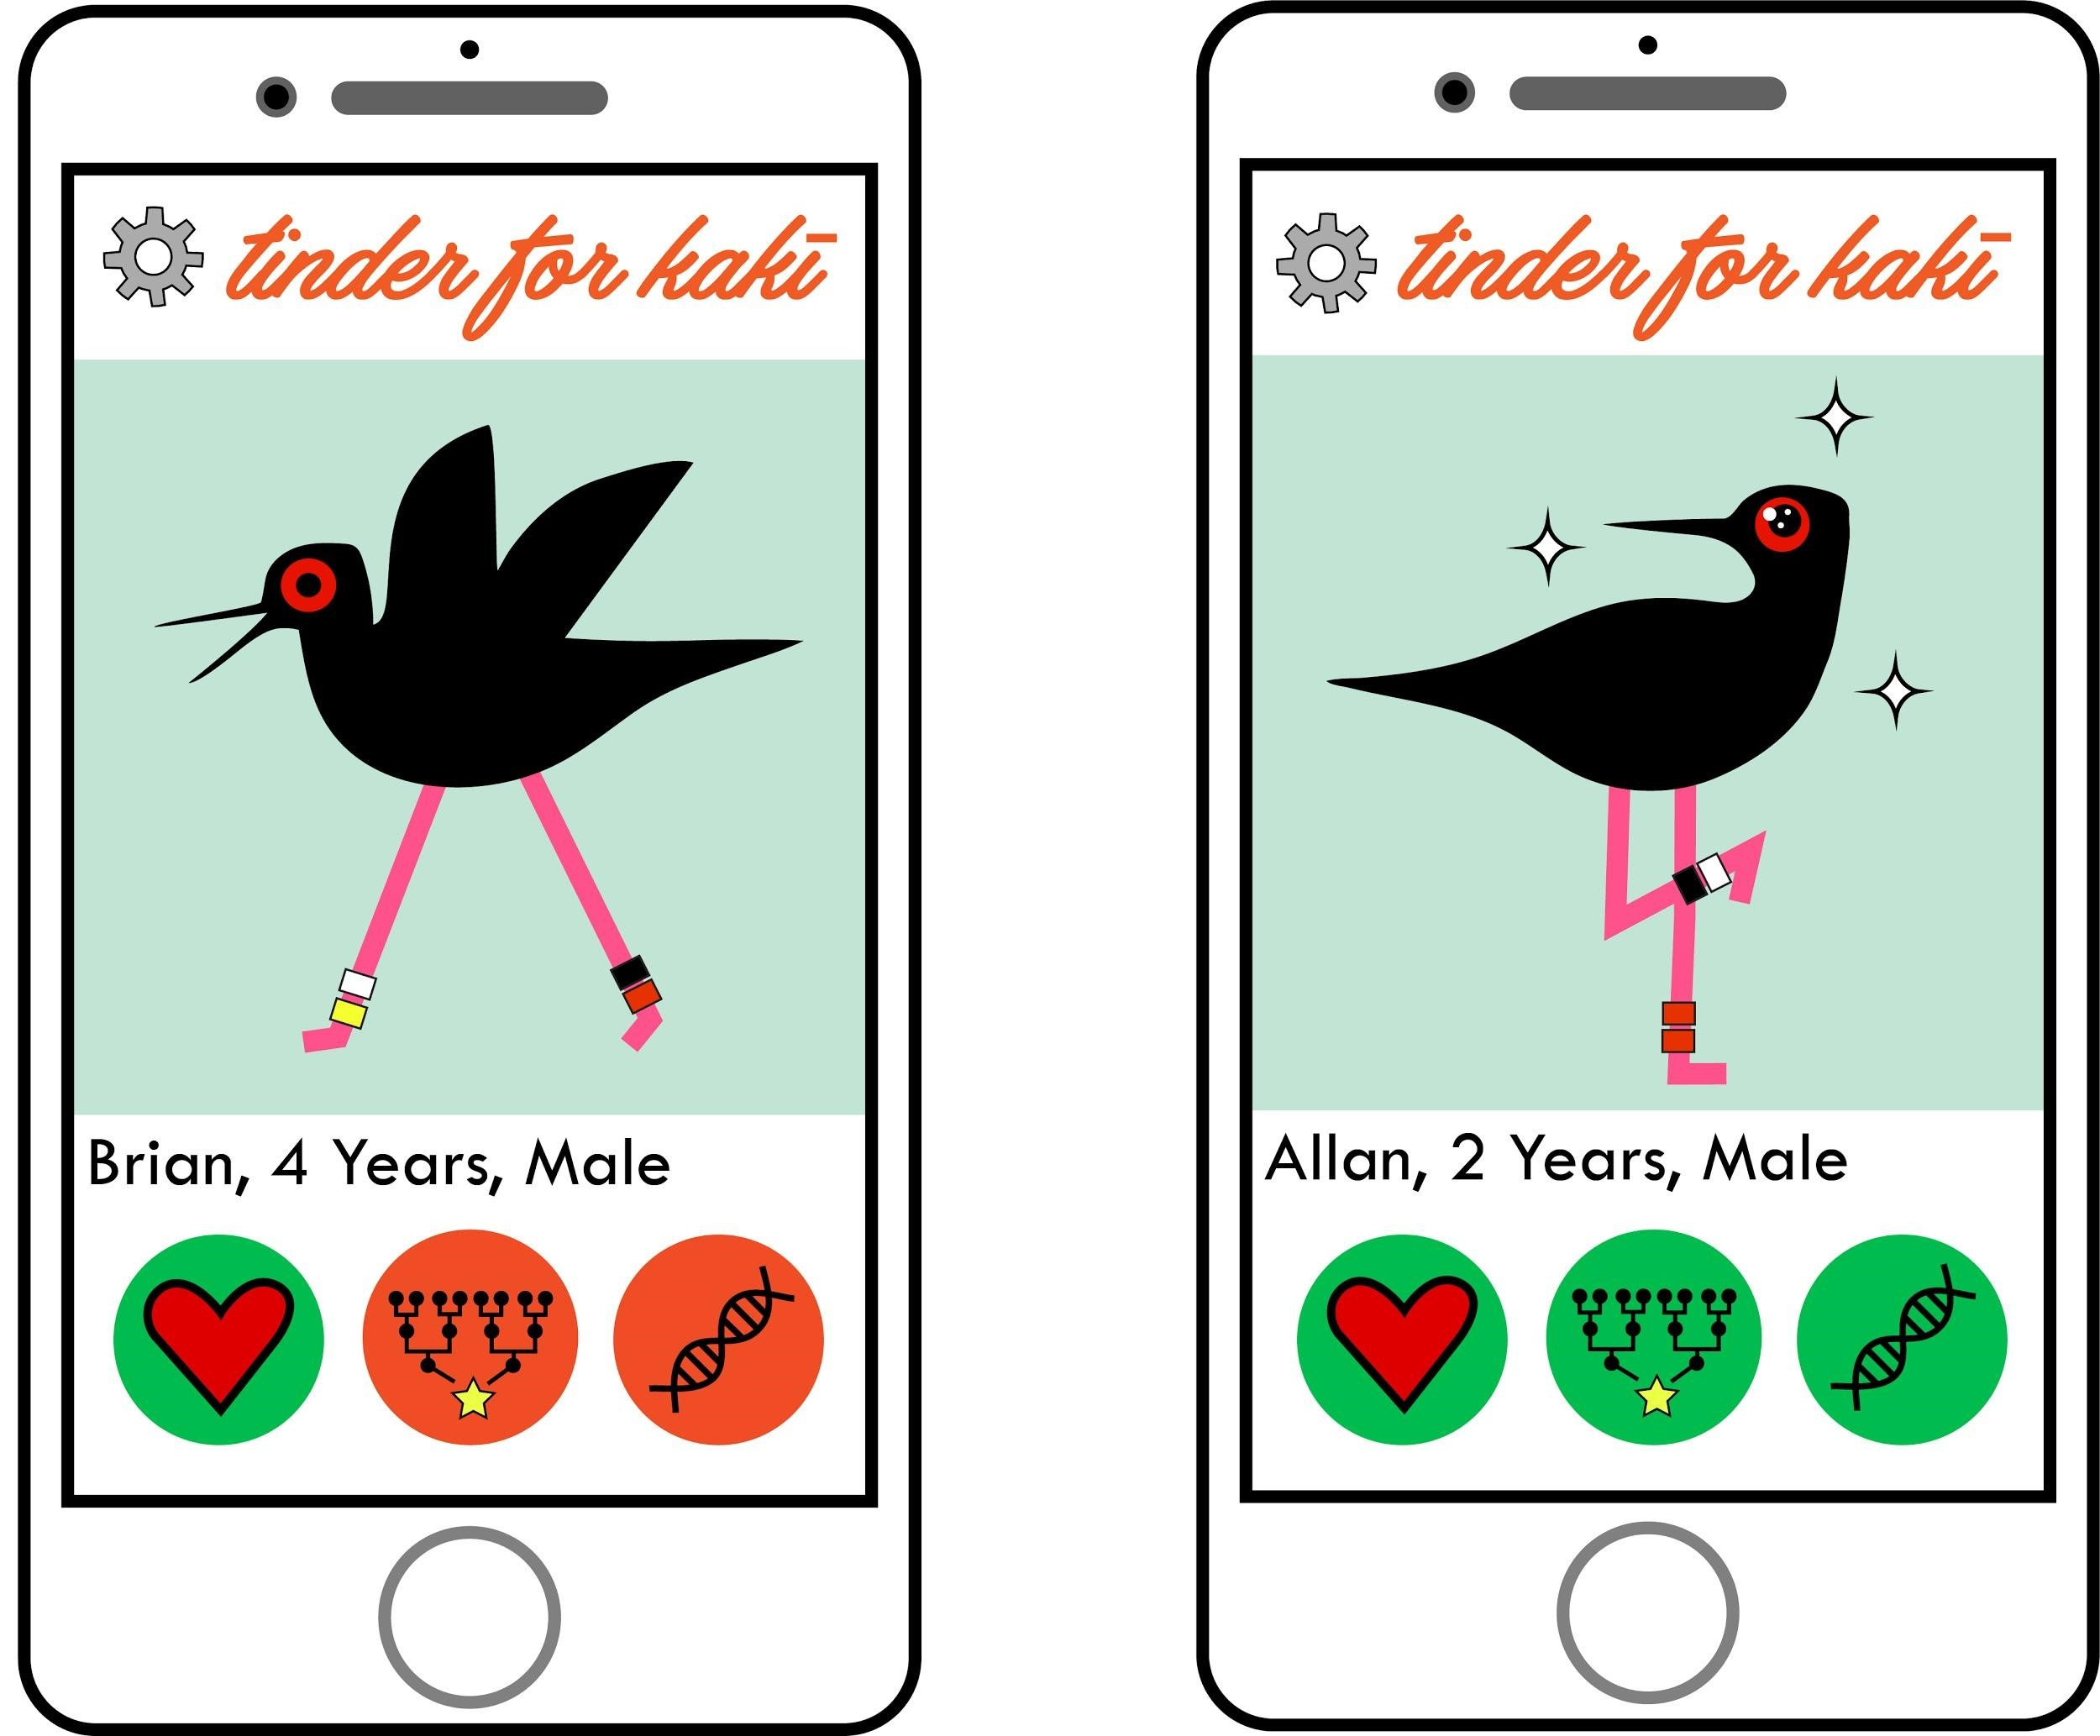 Featured image: Novel science communication sees Bird of the Year take on Tinder